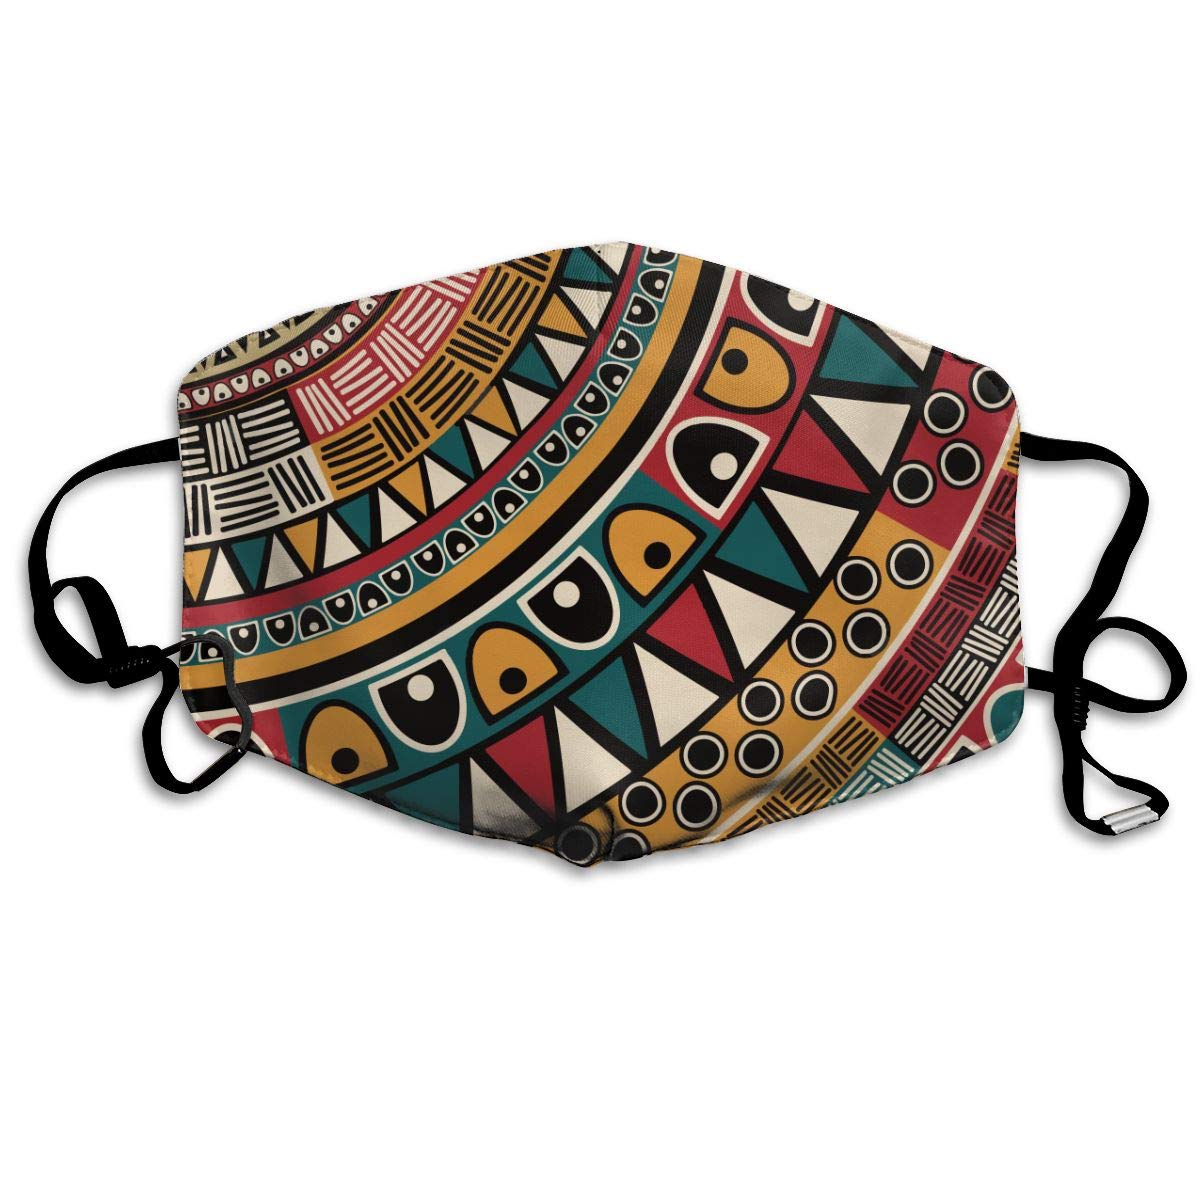 Tribal Ethnic Pattern Washable Reusable   Mask, Cotton Anti Dust Half Face Mouth Mask For Kids Teens Men Women With Adjustable